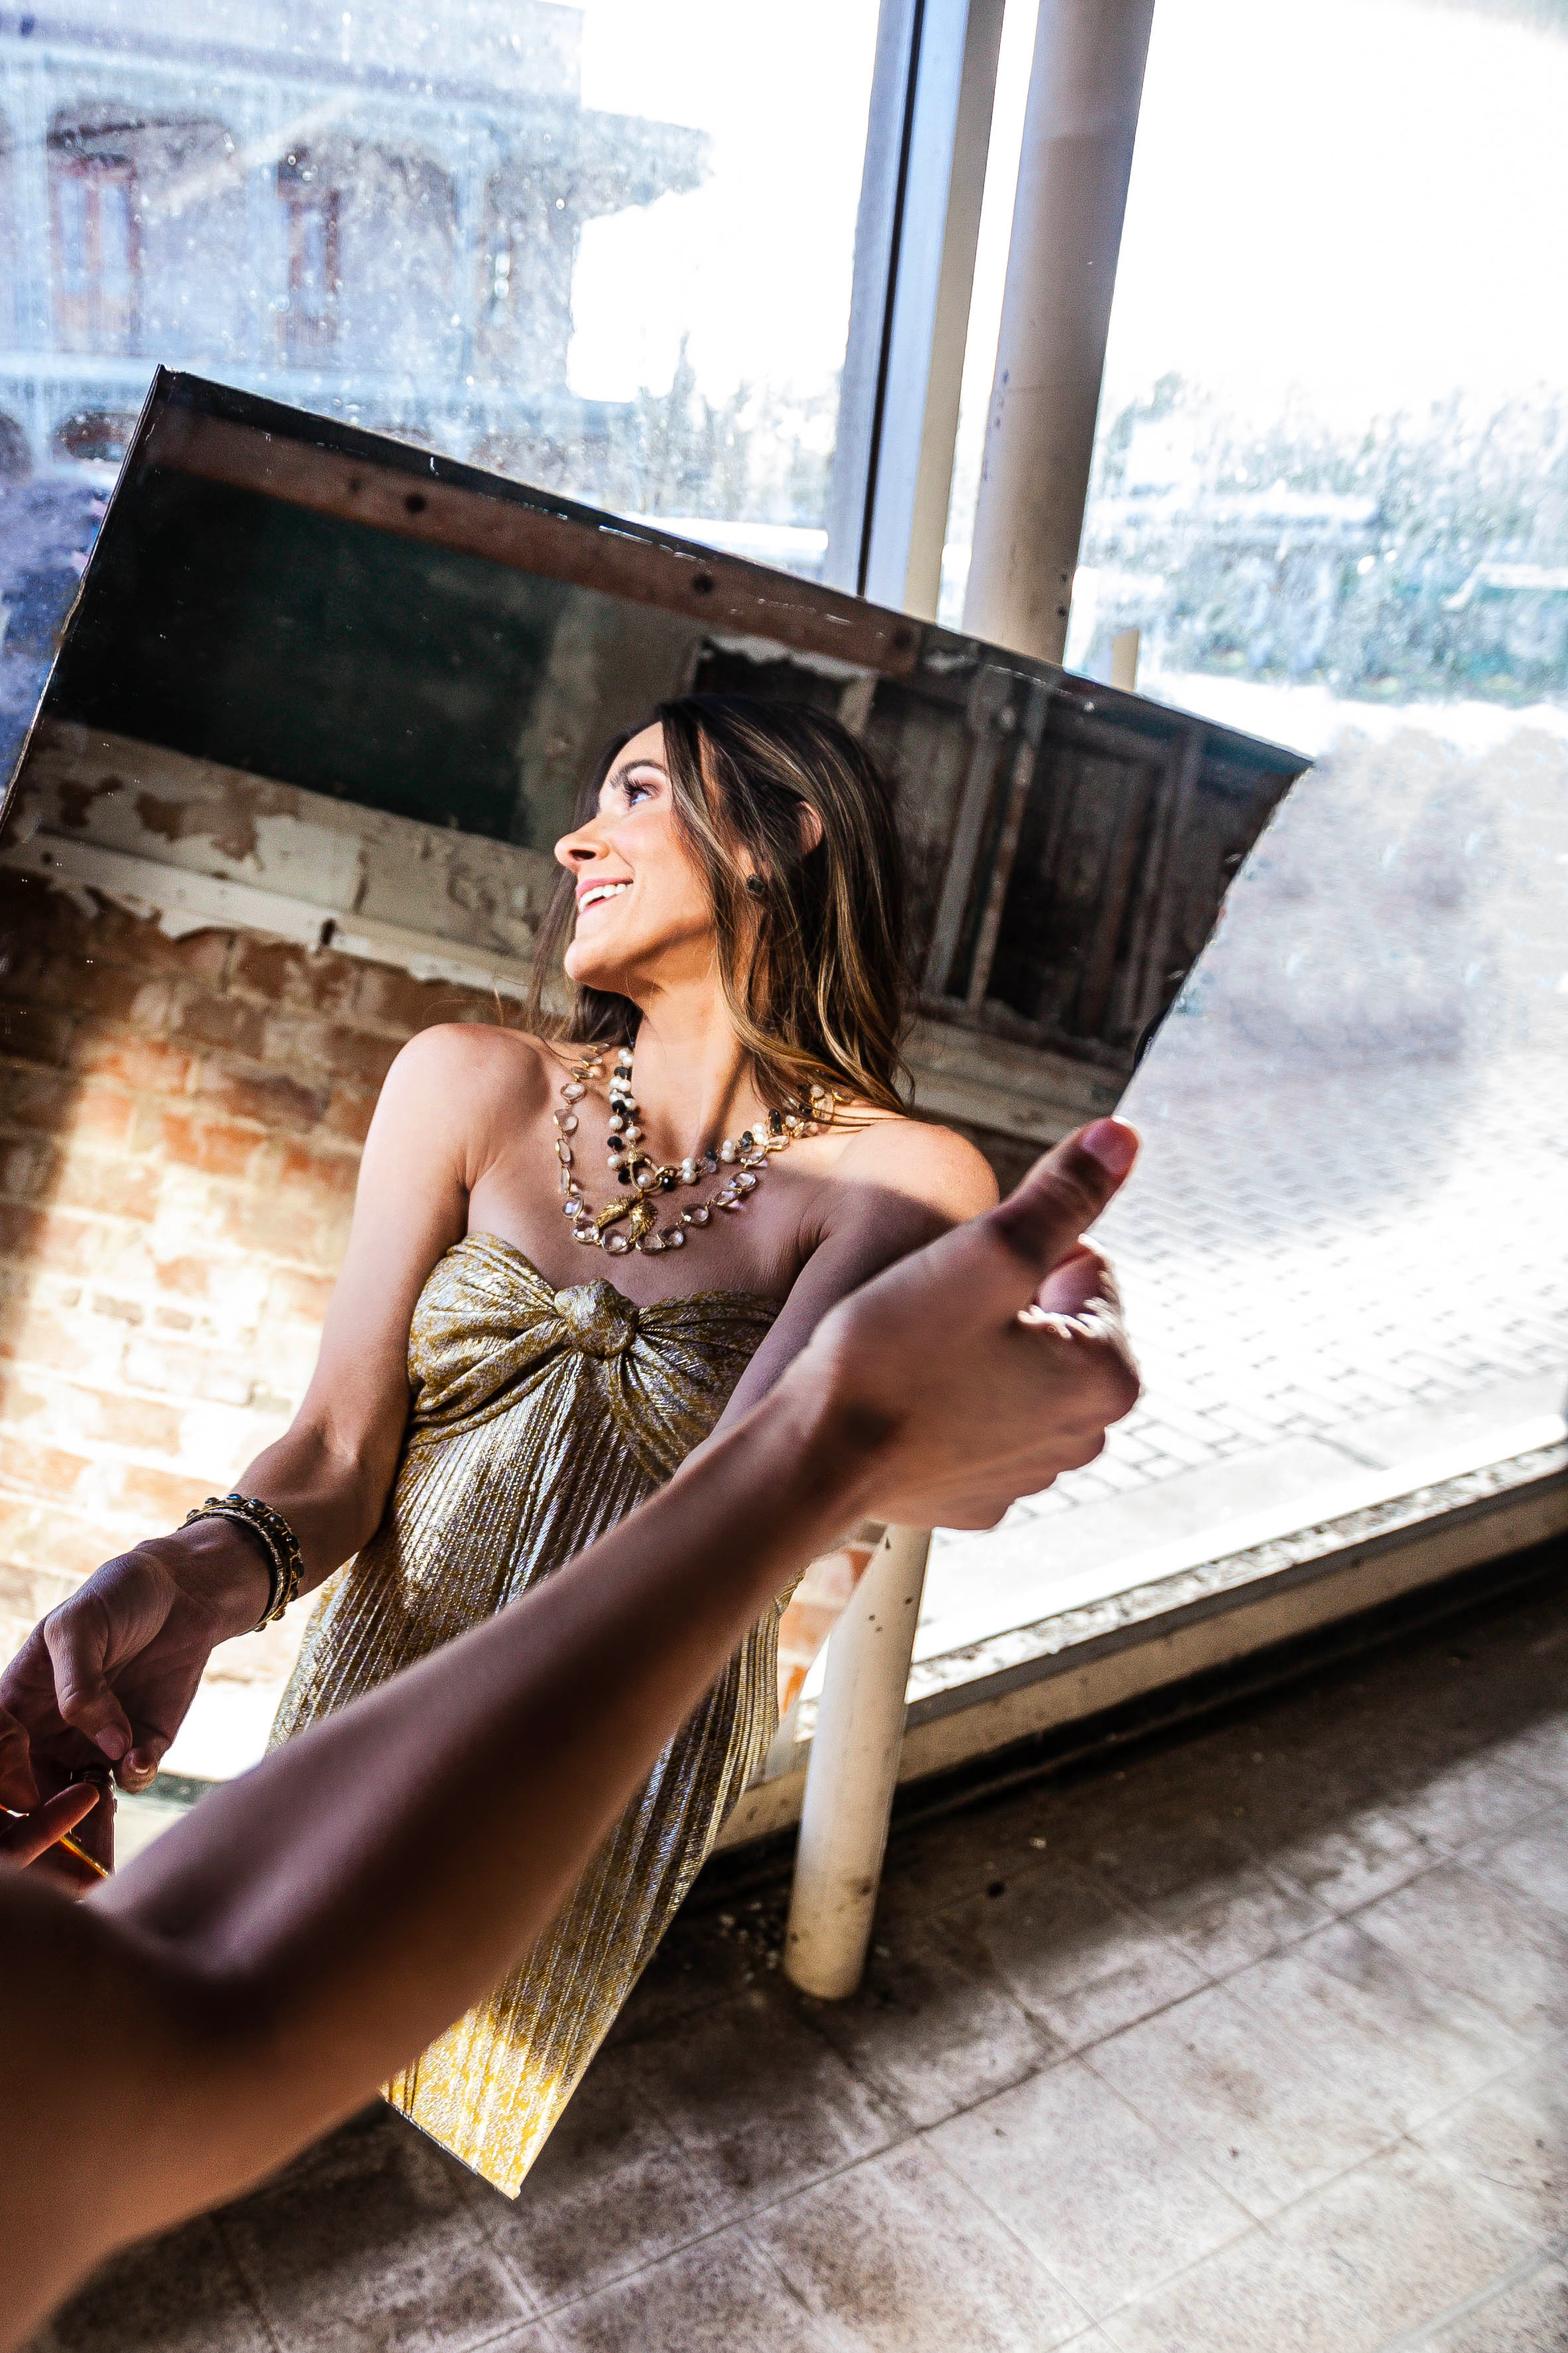 GOWN - ALEXIS - ON SALE  HERE  AND  HERE  - SIMILAR DRESS  HERE  | SHOES - CARRANO - LOCALLY SOURCED BY  DAPHNE'S SHOE BOUTIQUE- HERE  - SIMILAR  HERE  | NECKLACE- HARVEST JEWELS -  HERE  AND  HERE  | PENDANT ON NECKLACE - HARVEST JEWELS -  HERE  | BANGLES - HARVEST JEWELS -  HERE ,  HERE  | EARRINGS - HARVEST JEWELS -  HERE  | HAIR AND MAKEUP BY  ASHLEY WEST MUA